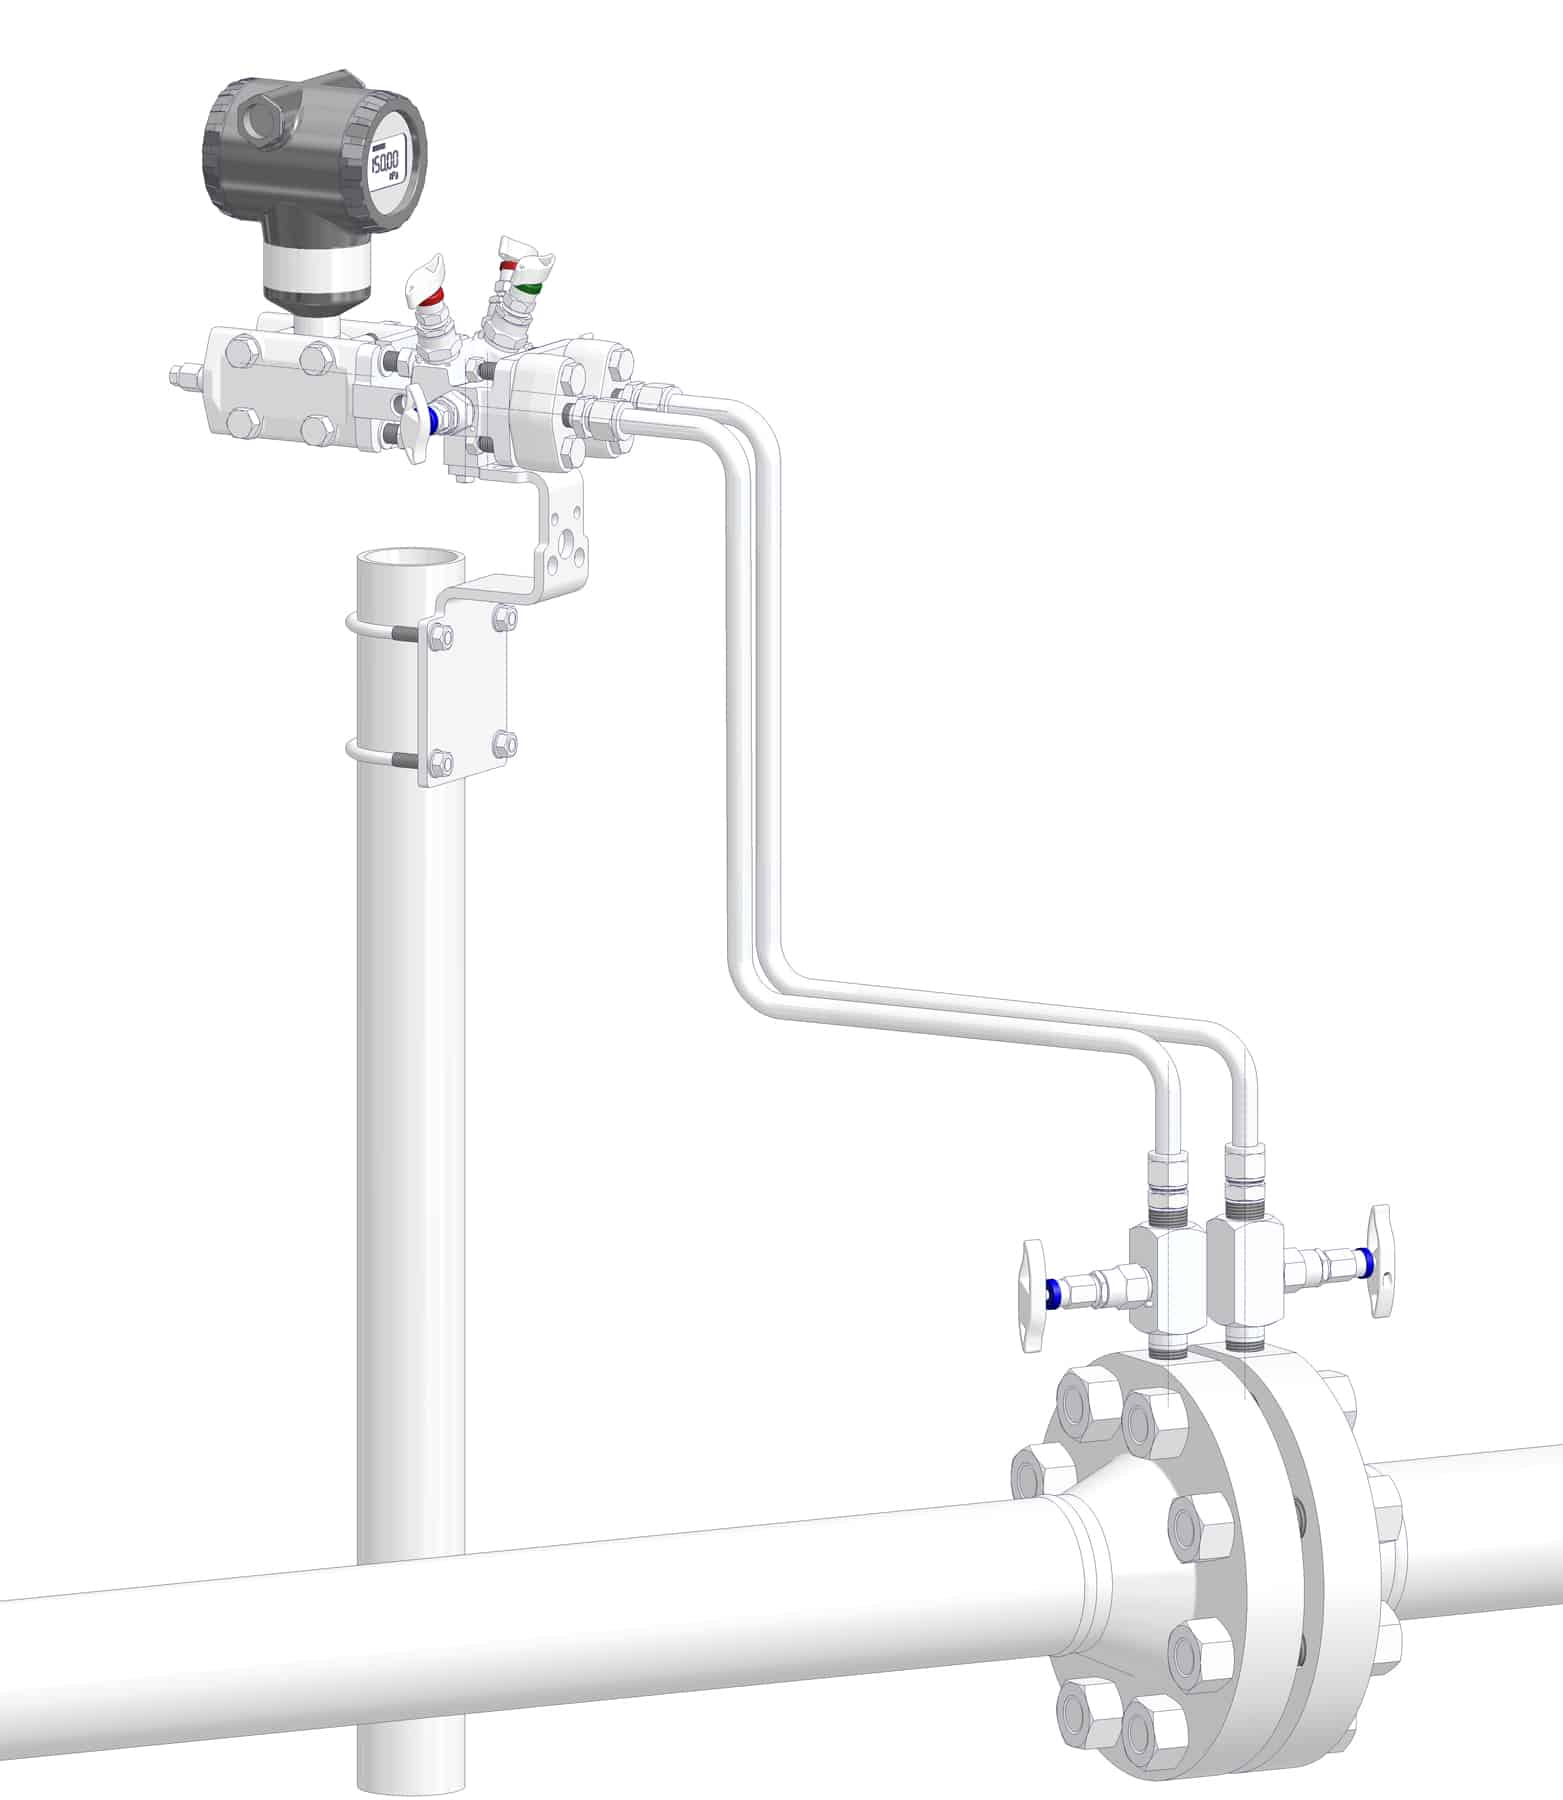 DirectMountSystem - Conventional Installation with impulse piping.